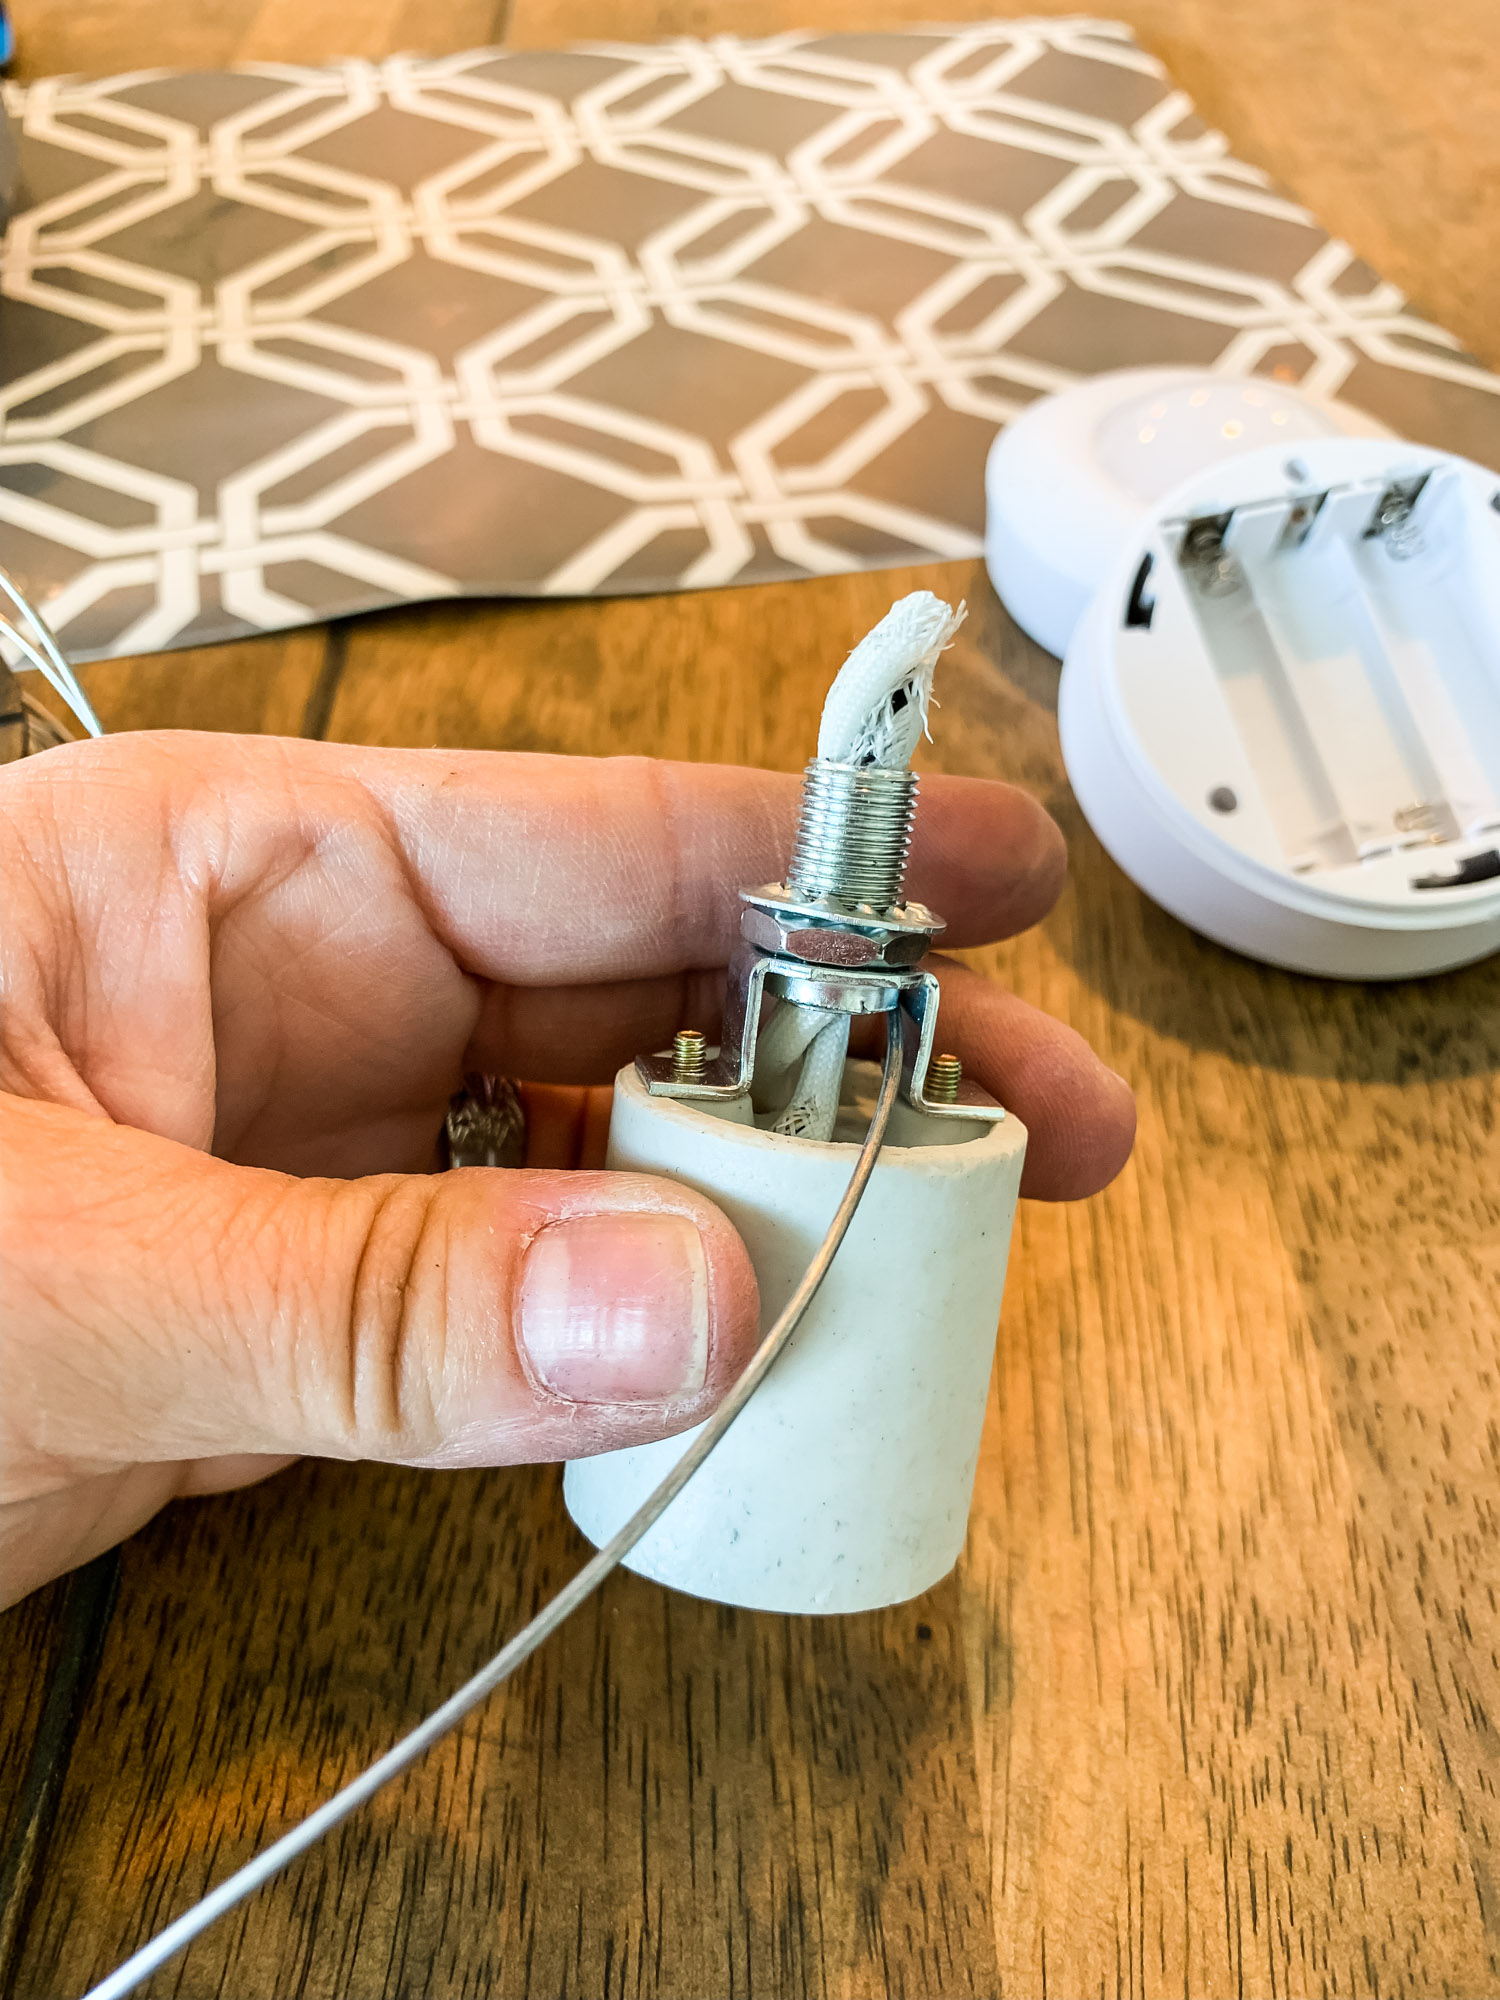 Thread flexible wiring through the top of the thing that holds the lightbulb and loop it around the bottom, where the lightbulb would go.